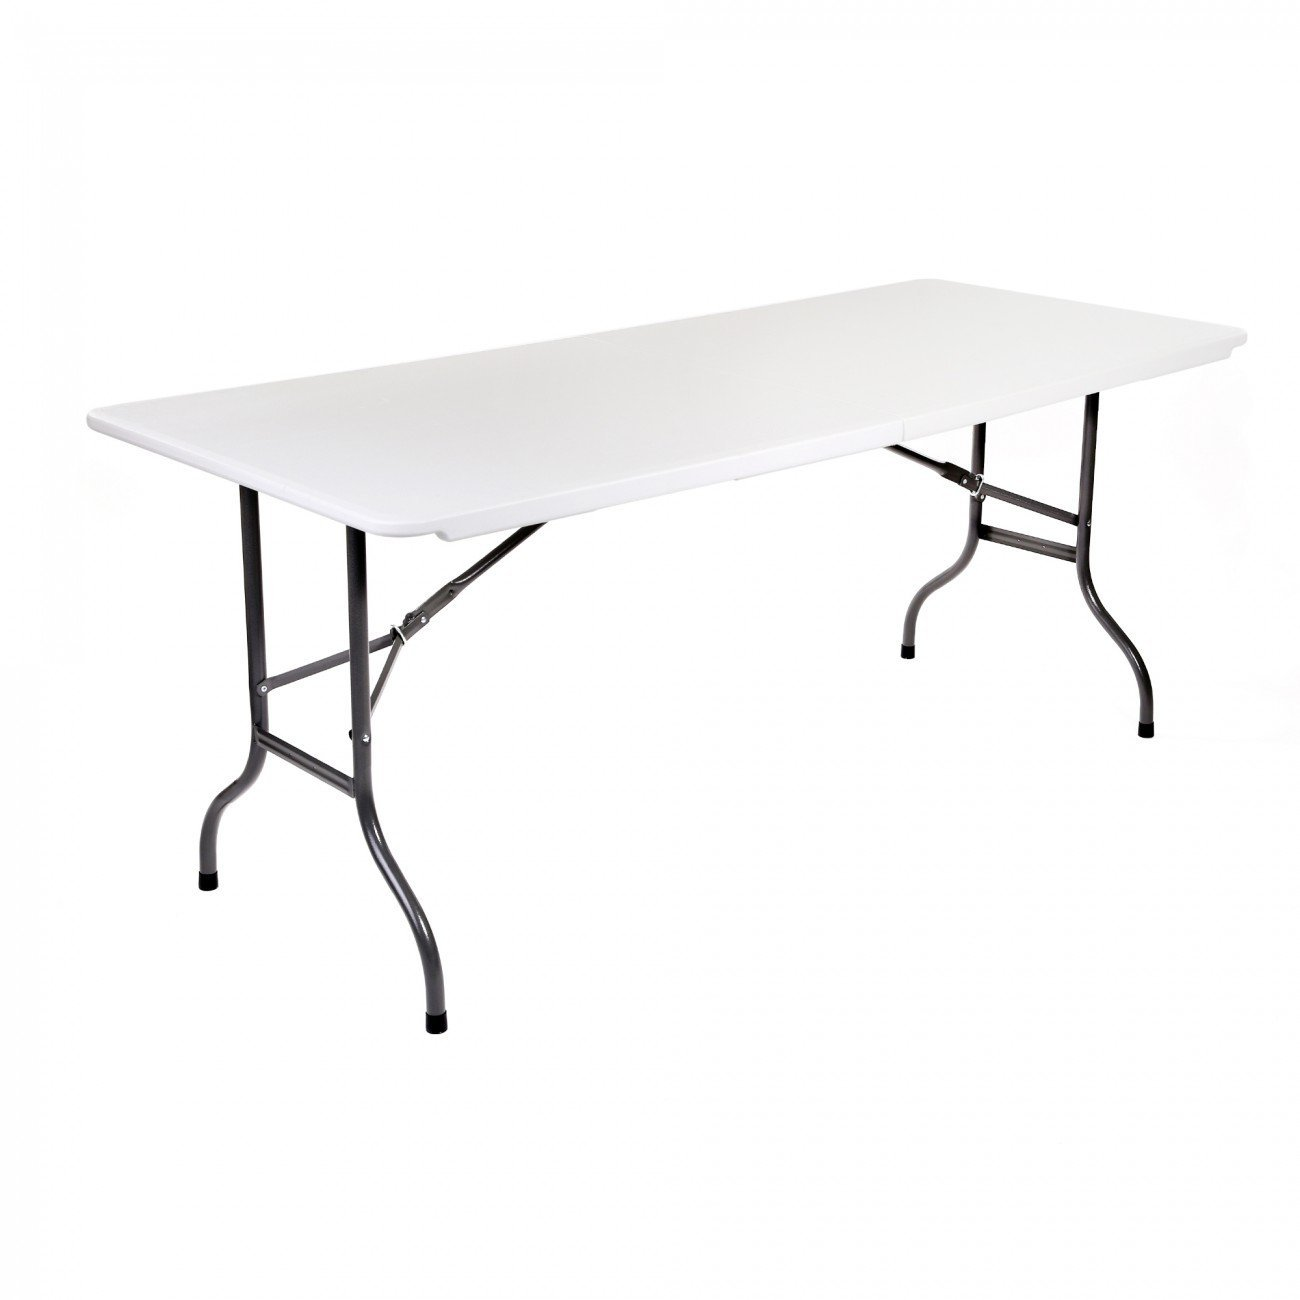 Table Haute Jardin Pliante Acheter Table Pliante Table Pliable Table Rabattable Table